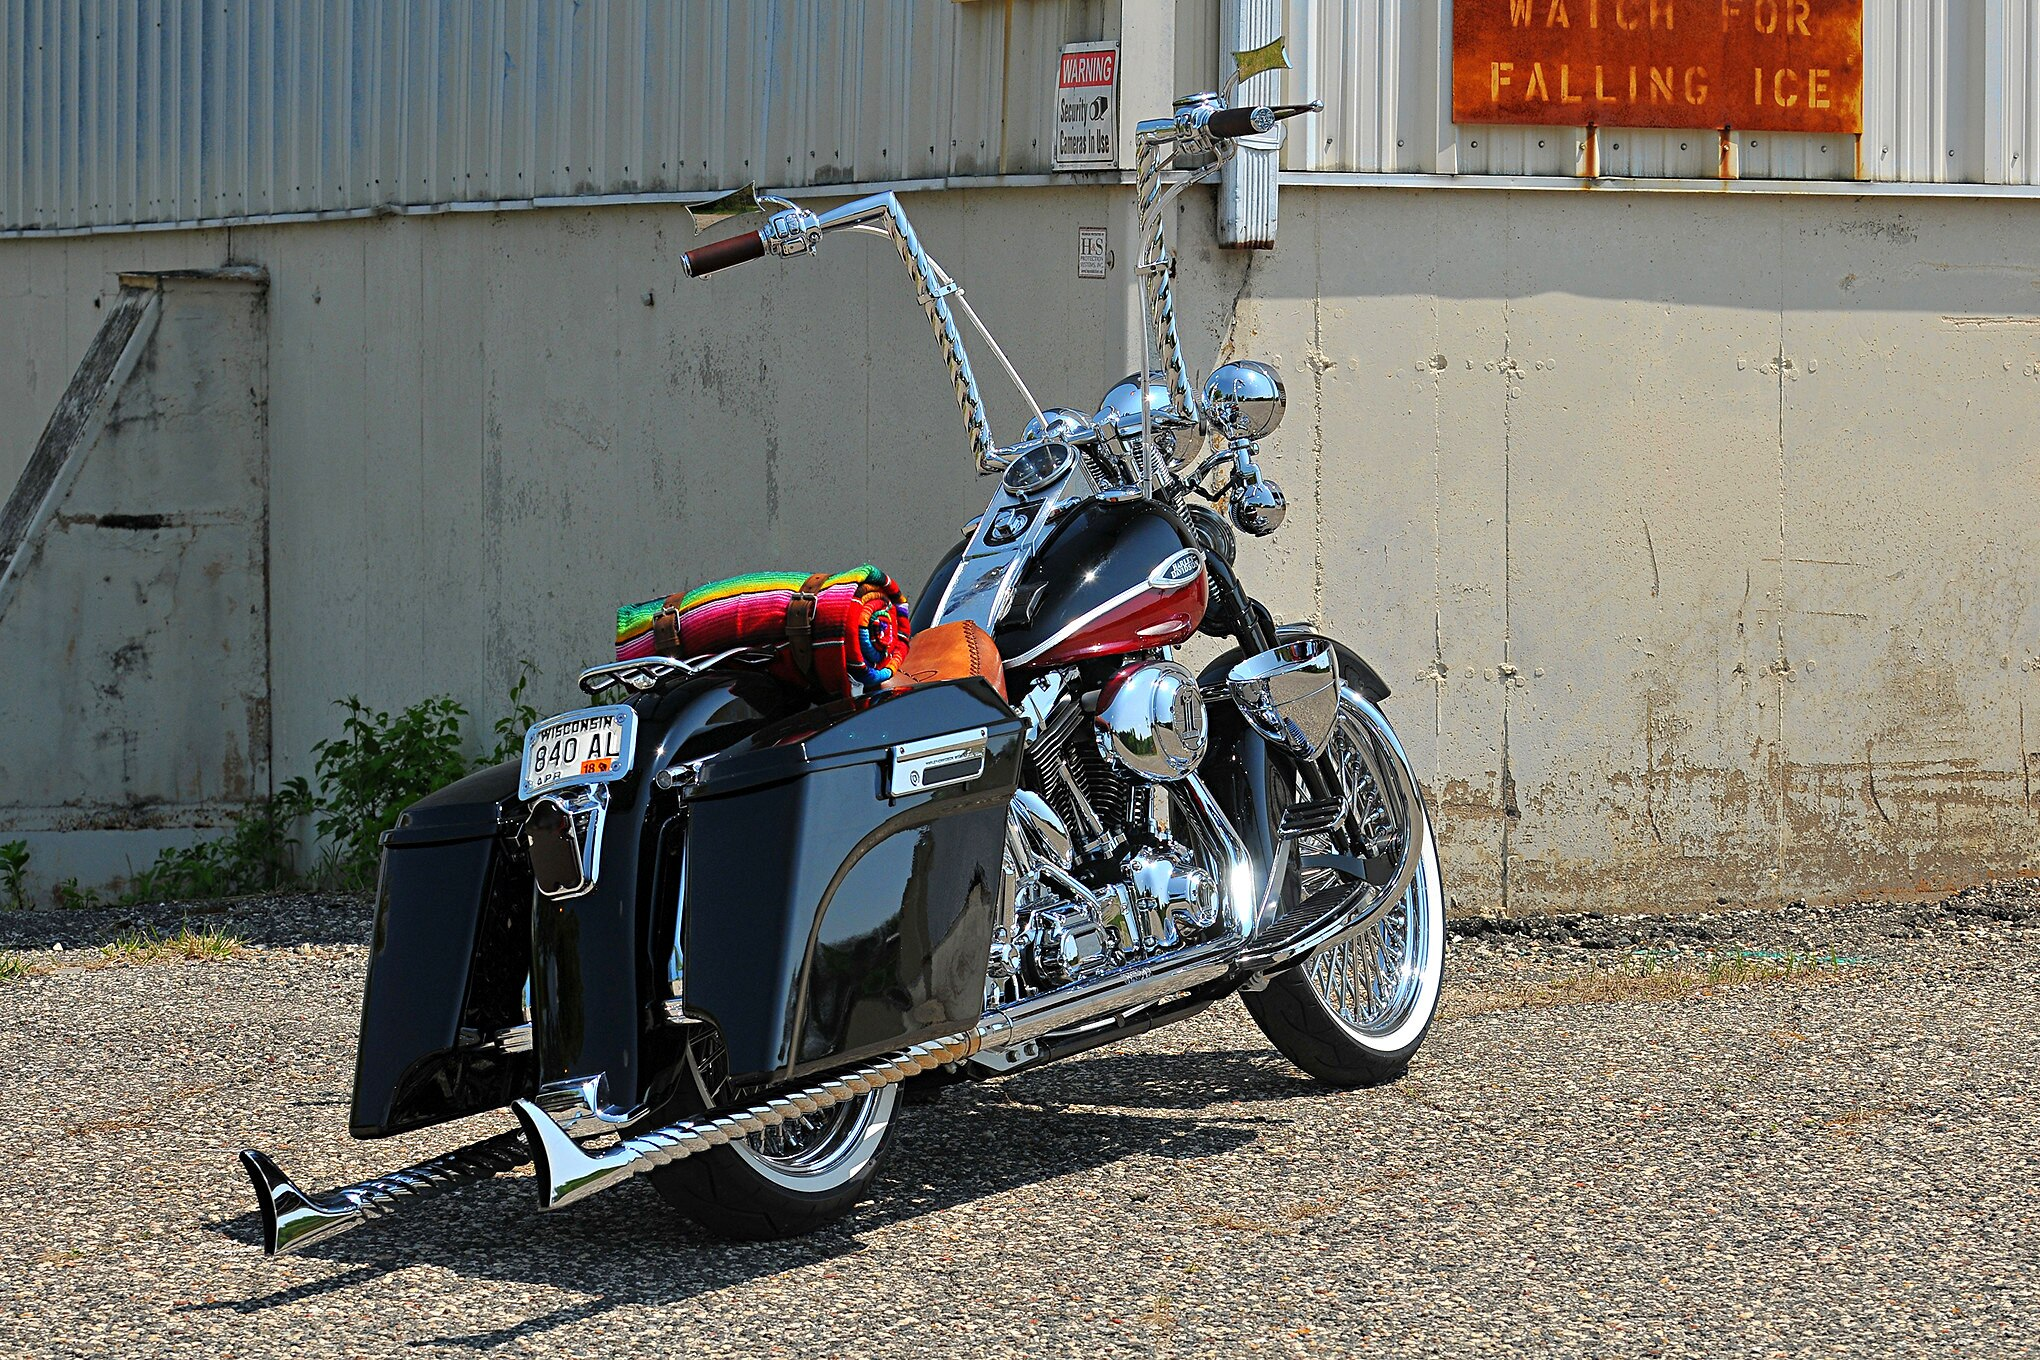 Harley Davidson Heritage Softail Th Year Anniversary Spoke Dayton Wheel together with Harley Davidson Softail Springer Back Three Quaret also  moreover Maxresdefault as well Harley Davidson Forty Eight. on harley softail suspension